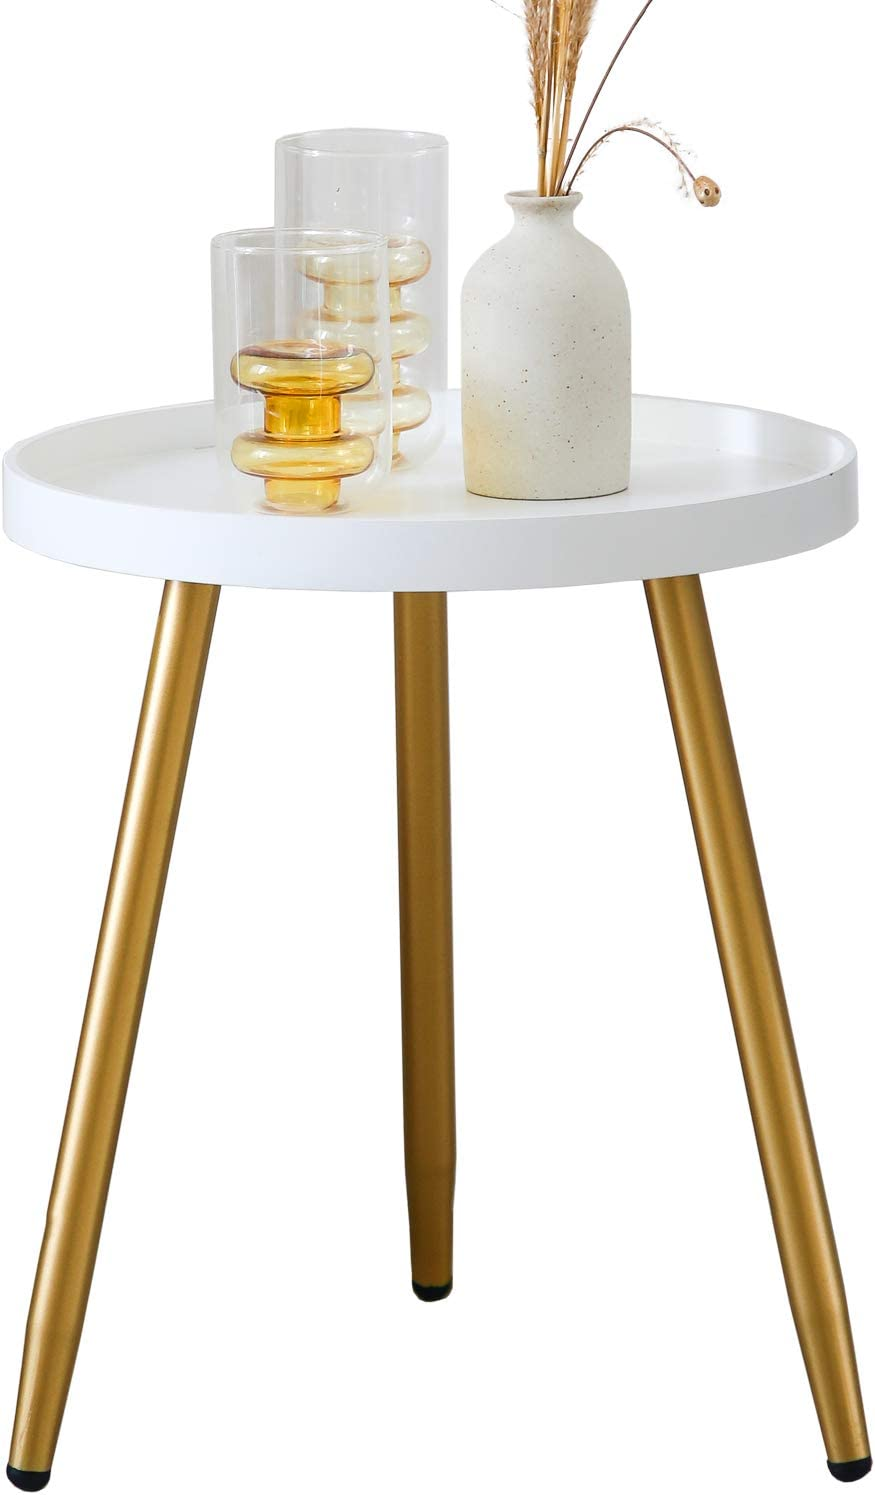 YMLHOME Round Side Table Modern Minimalism Coffee Table Nightstand Accent Table Wooden Tray End Table for Small Spaces Living Room Bedroom Office (Gold & White)